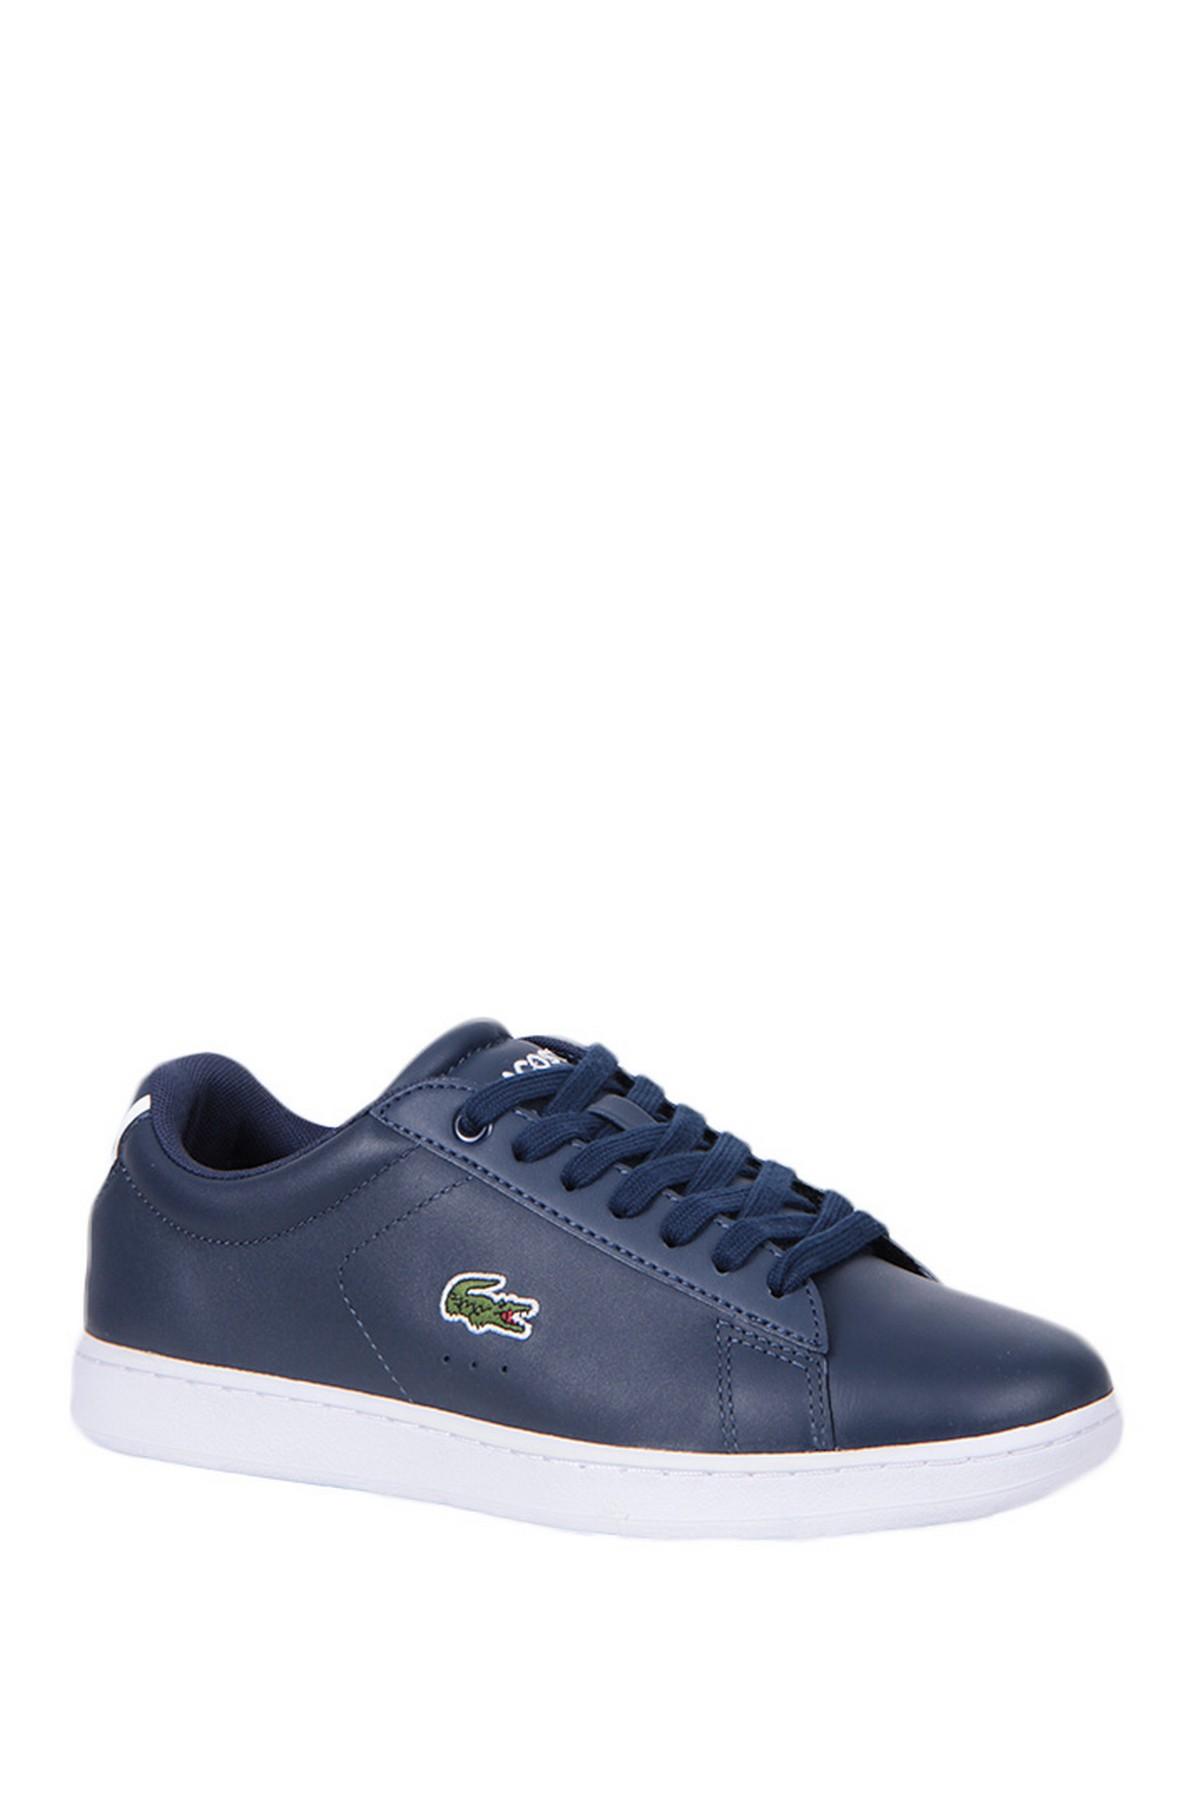 Lacoste SPW0132-003